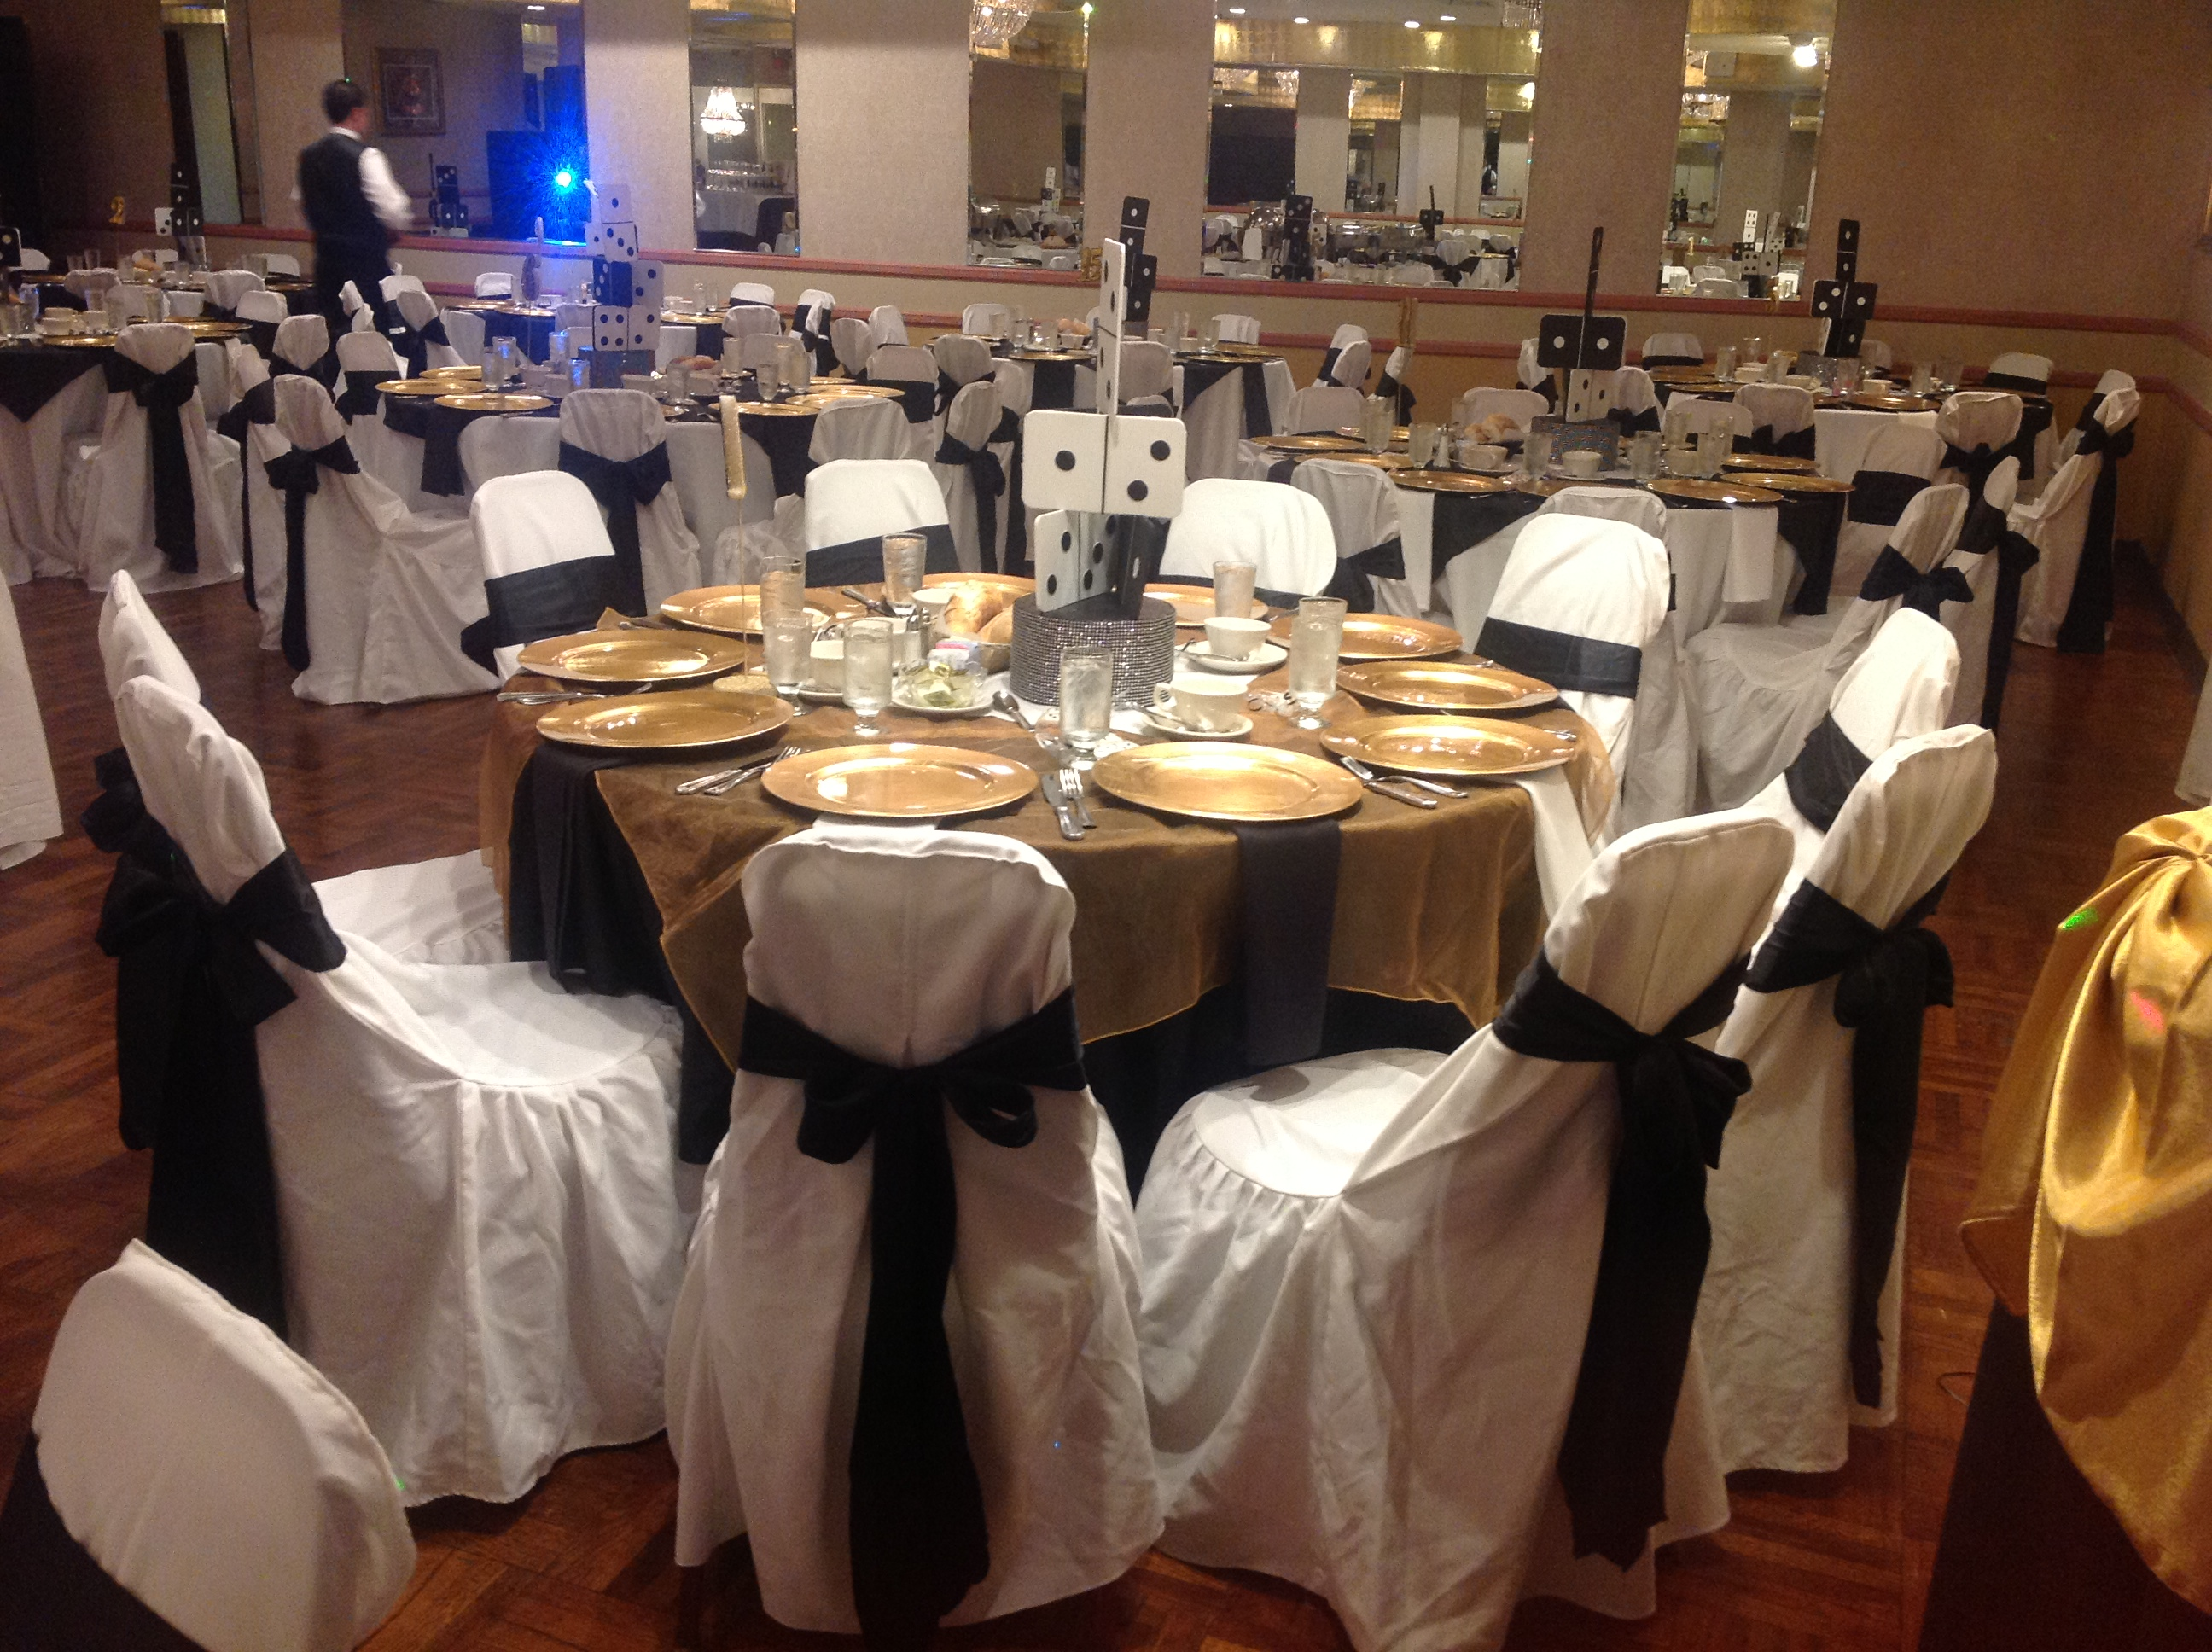 Marbella Restaurant Catering Banquet Facilities